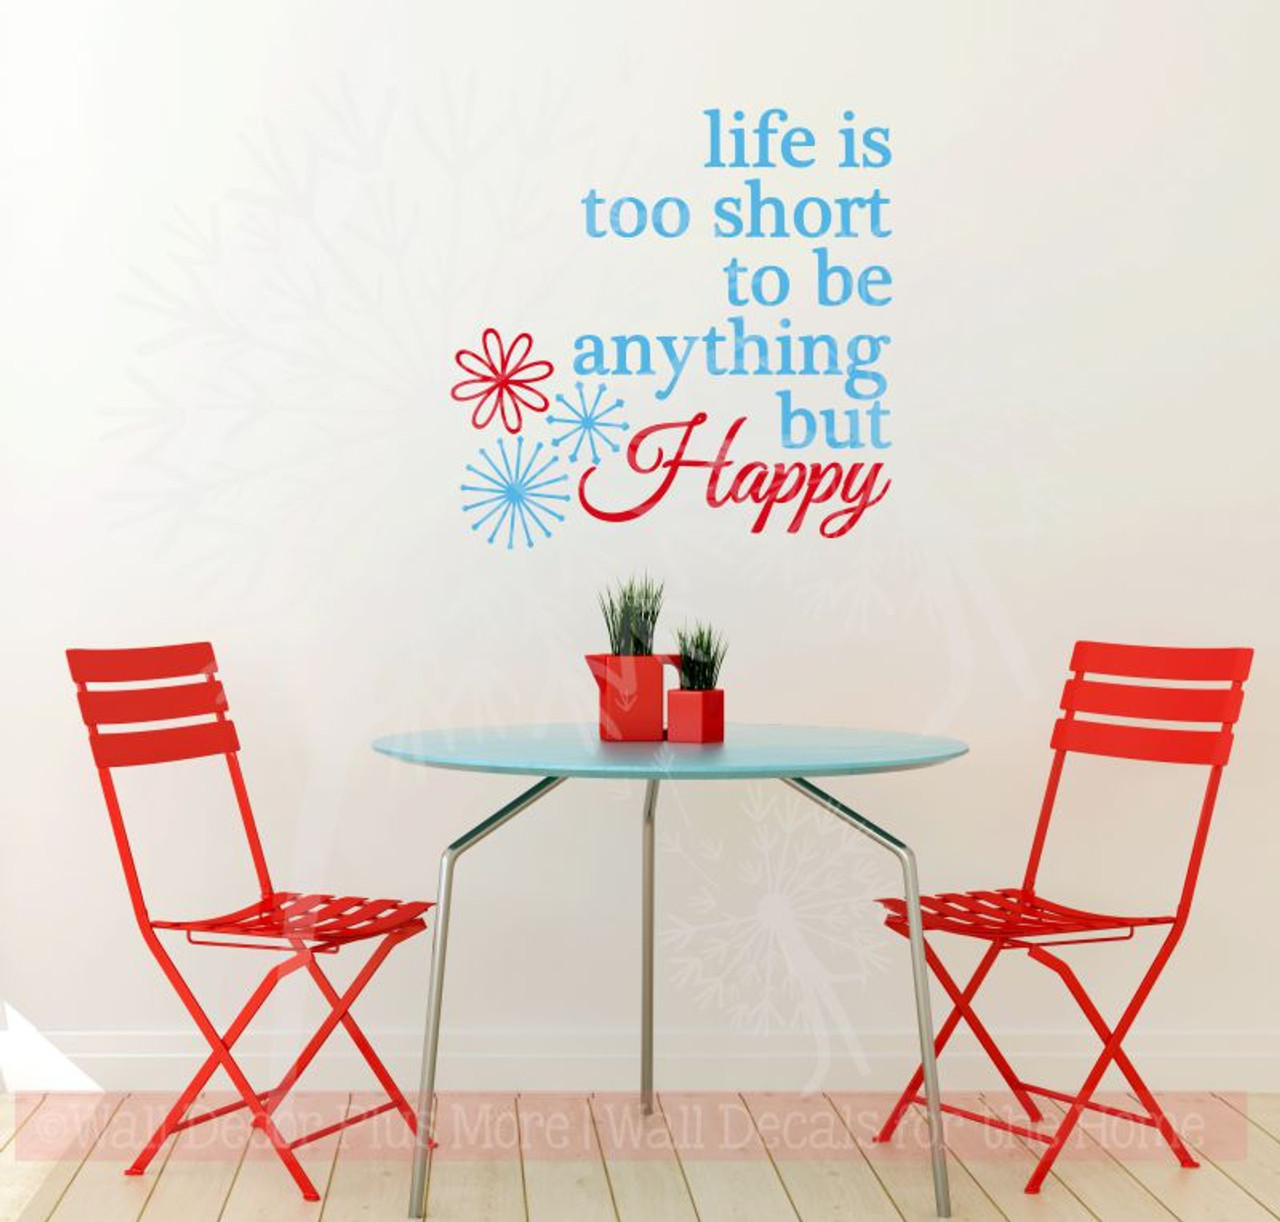 Life Is Too Short To Be Anything But Happy Quotes: Life Is Too Short To Be Anything But Happy Motivational